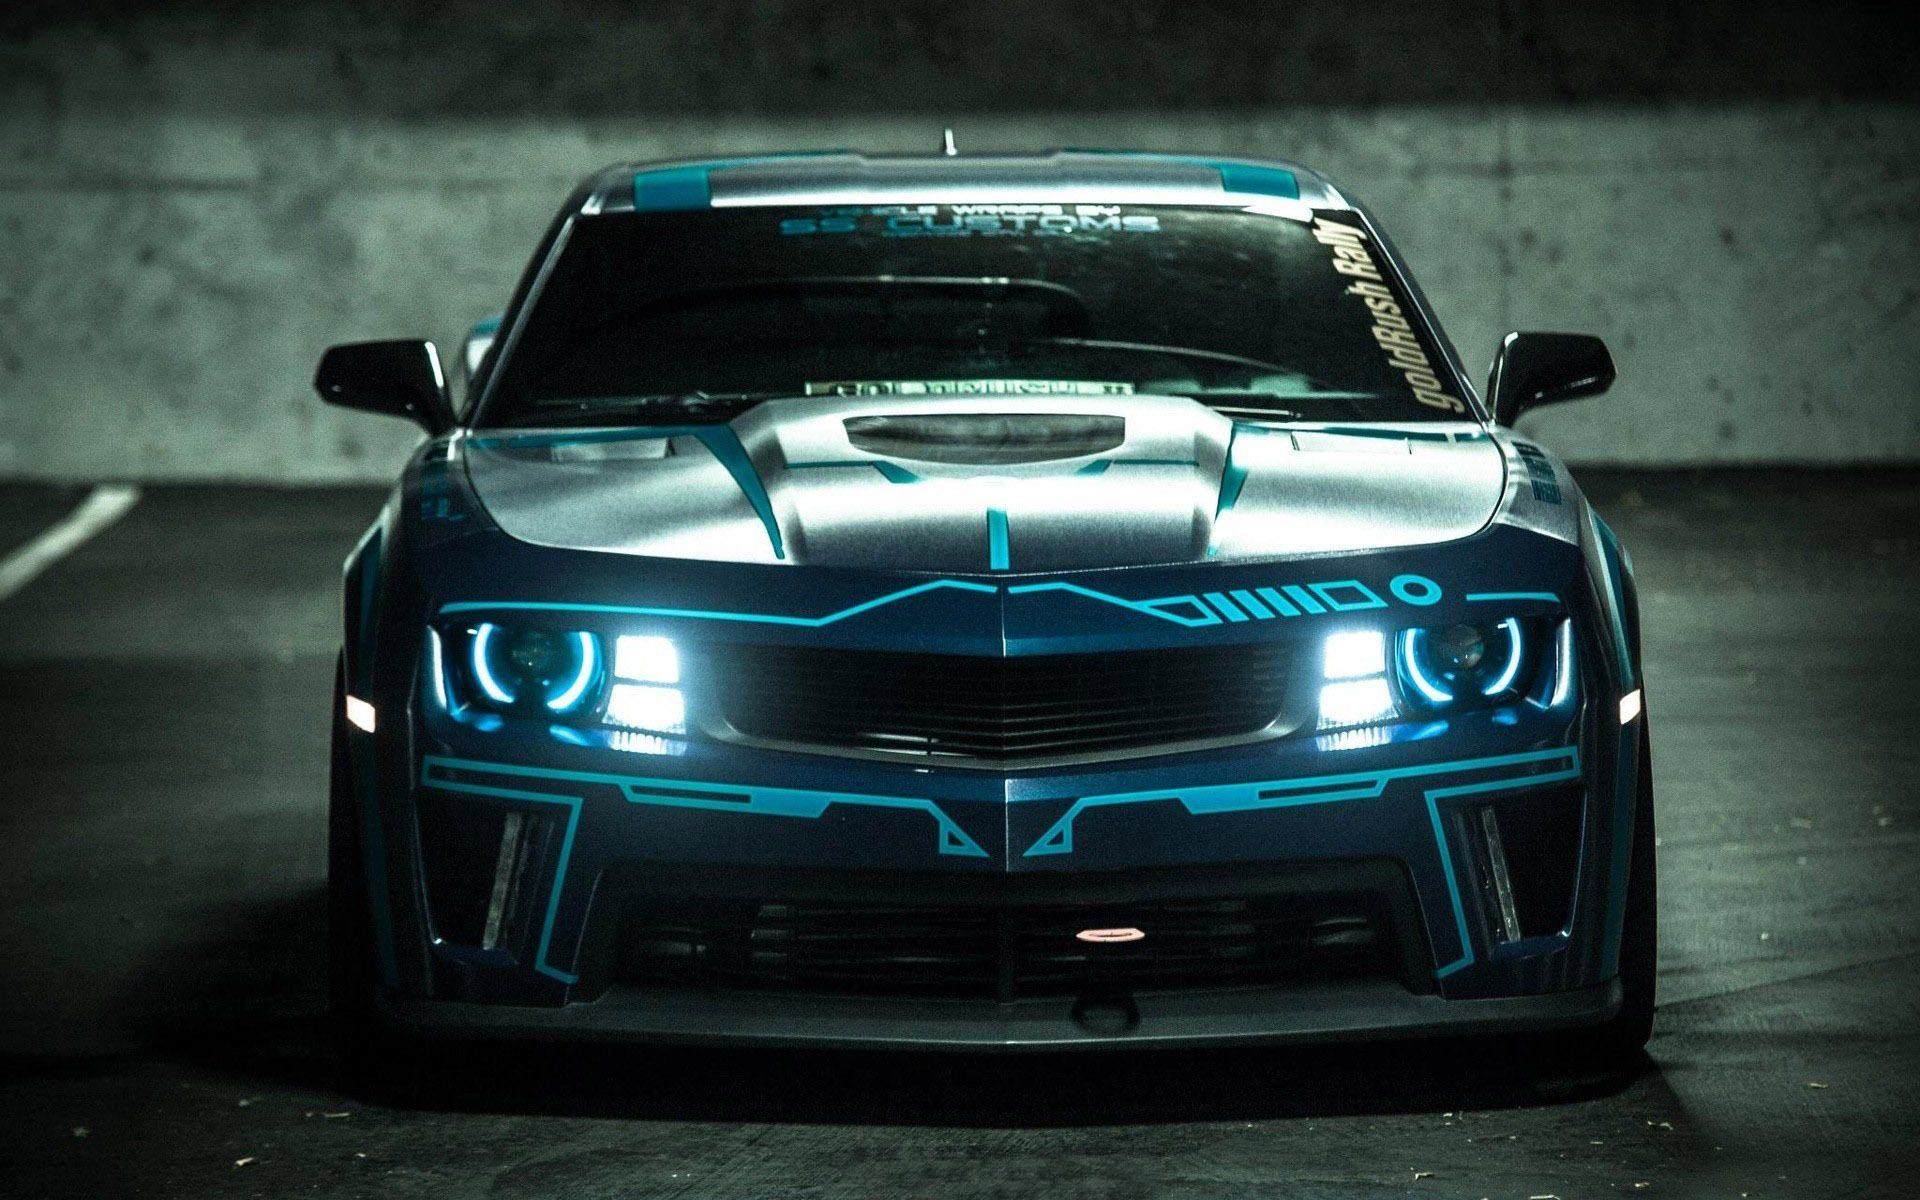 Tron chevy camaro by team turbo legacy funky rides cycles vehicles funk gumbo radio